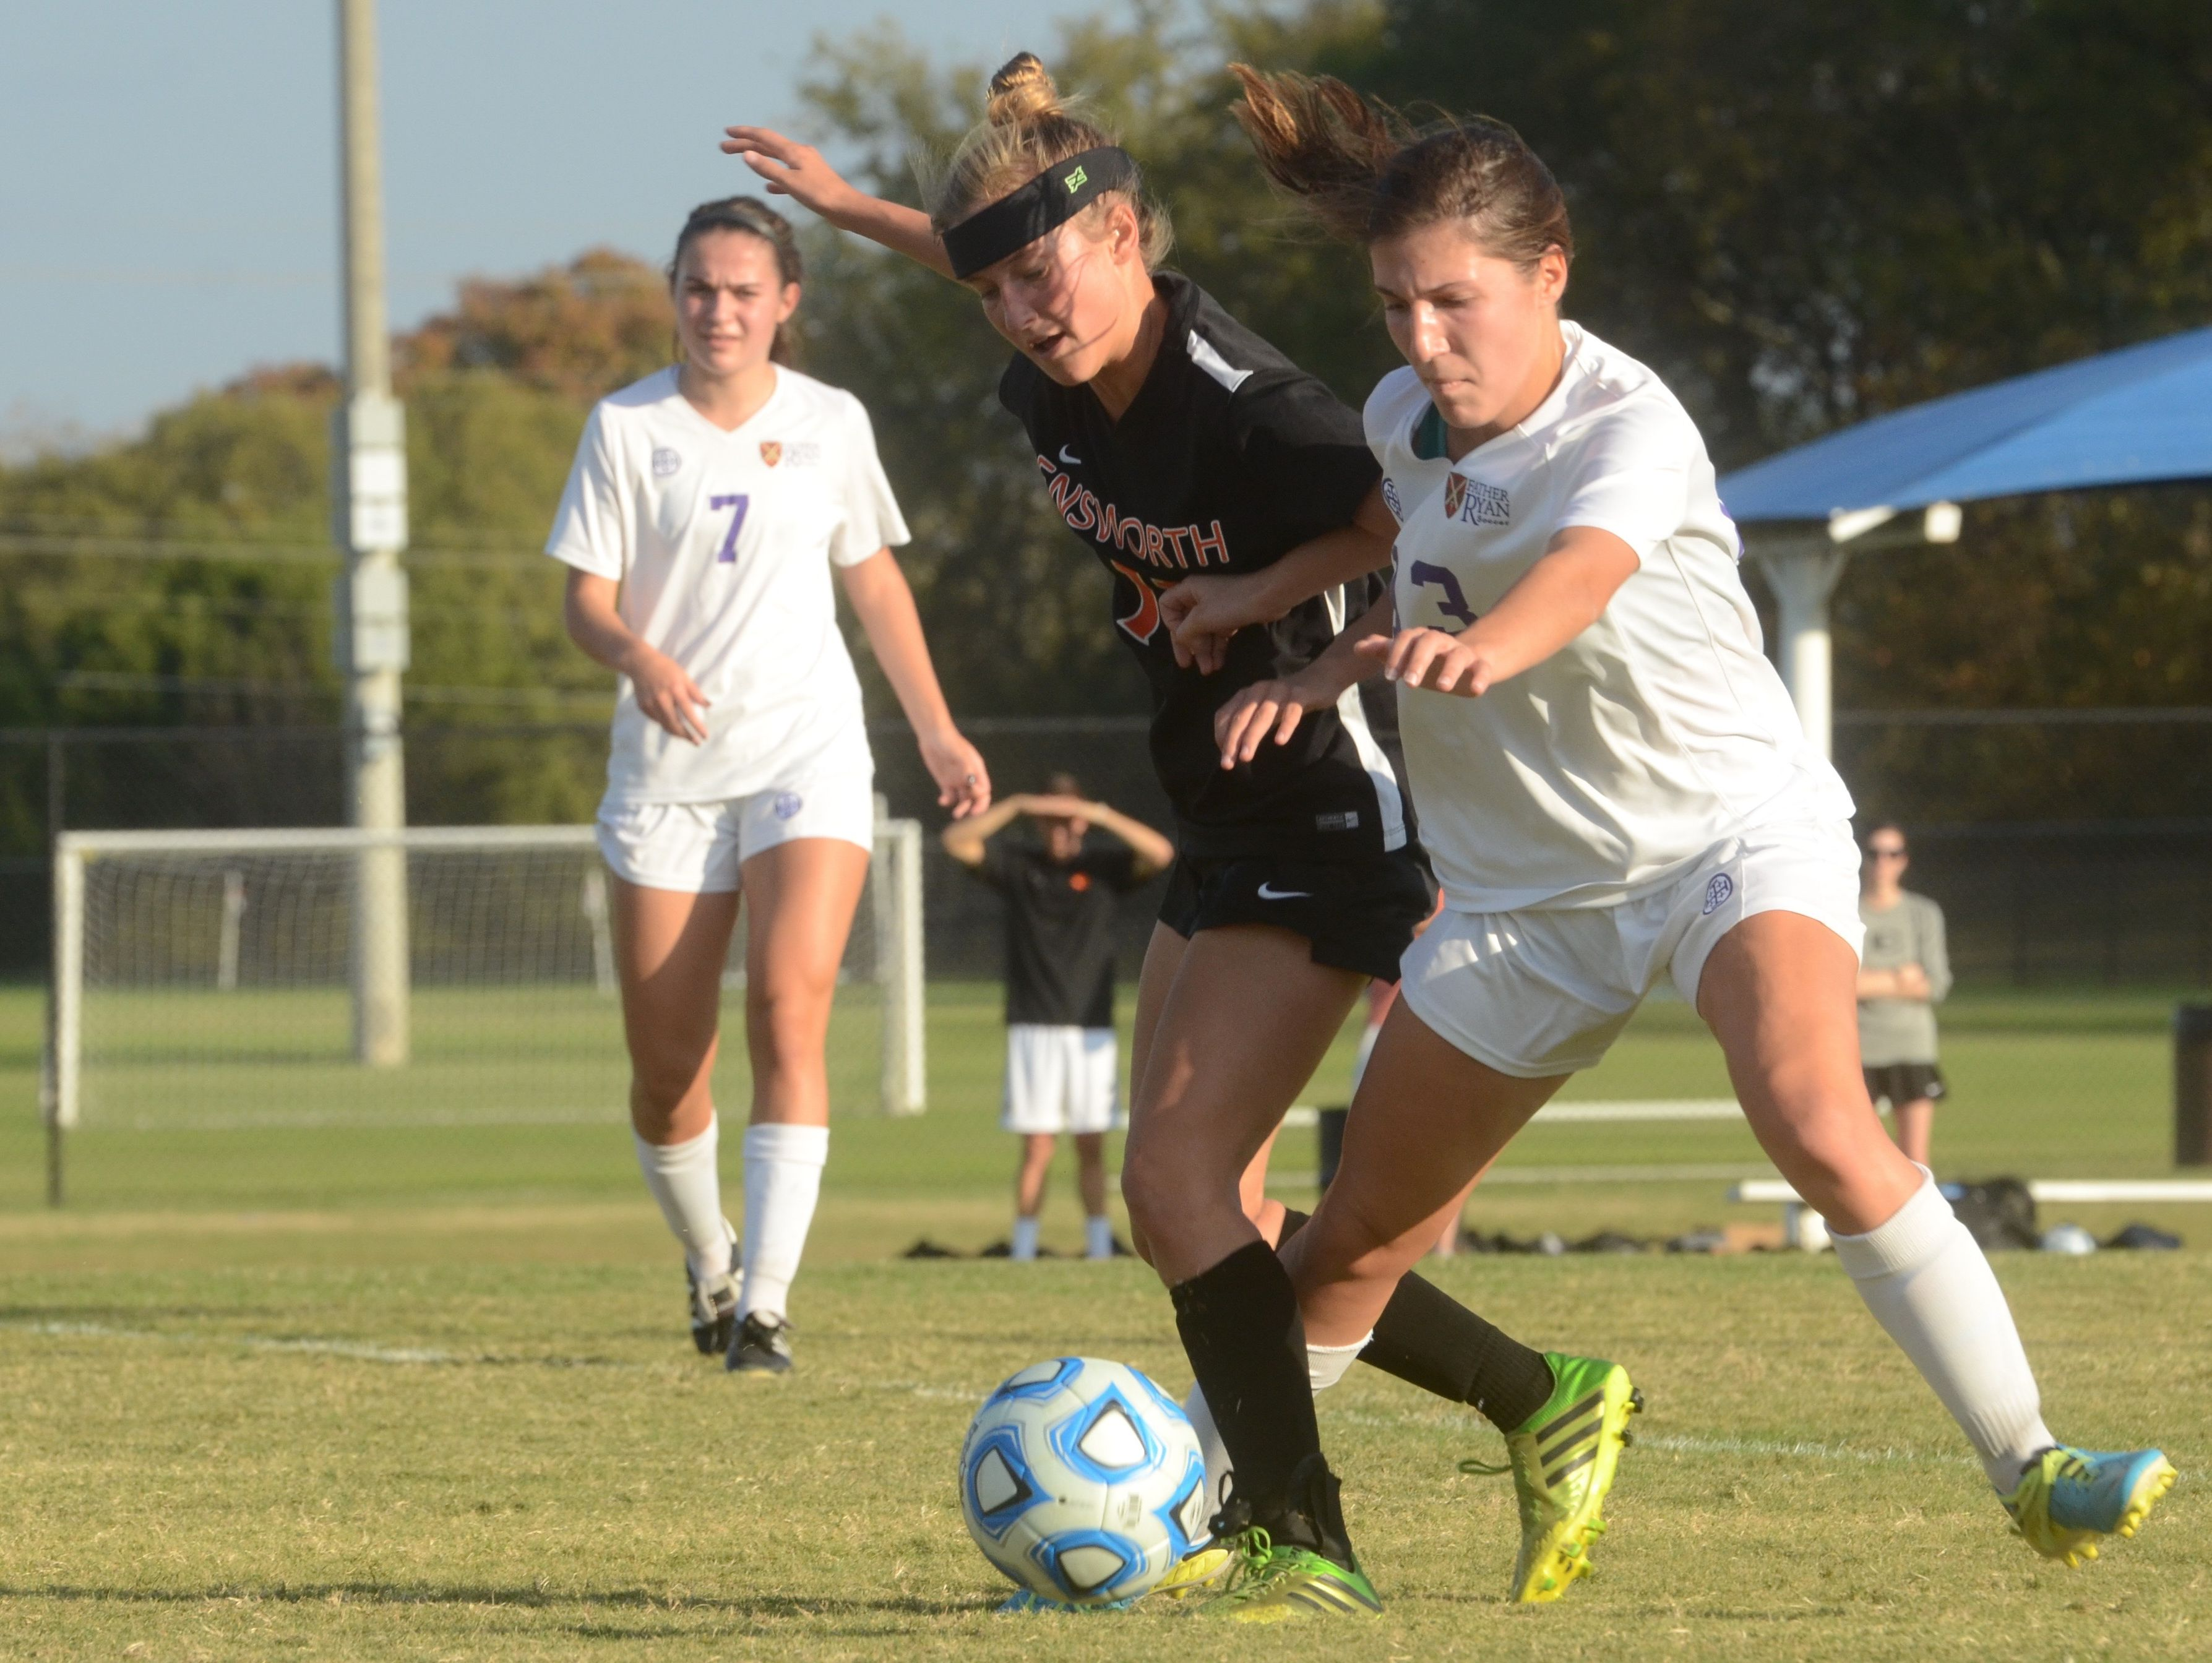 Ensworth's Dorothy Faber and Father Ryan's Olivia Allen (3) battle for possession as Father Ryan's Kelsey Roche (7) looks on during Saturday's Division II-AA title match.